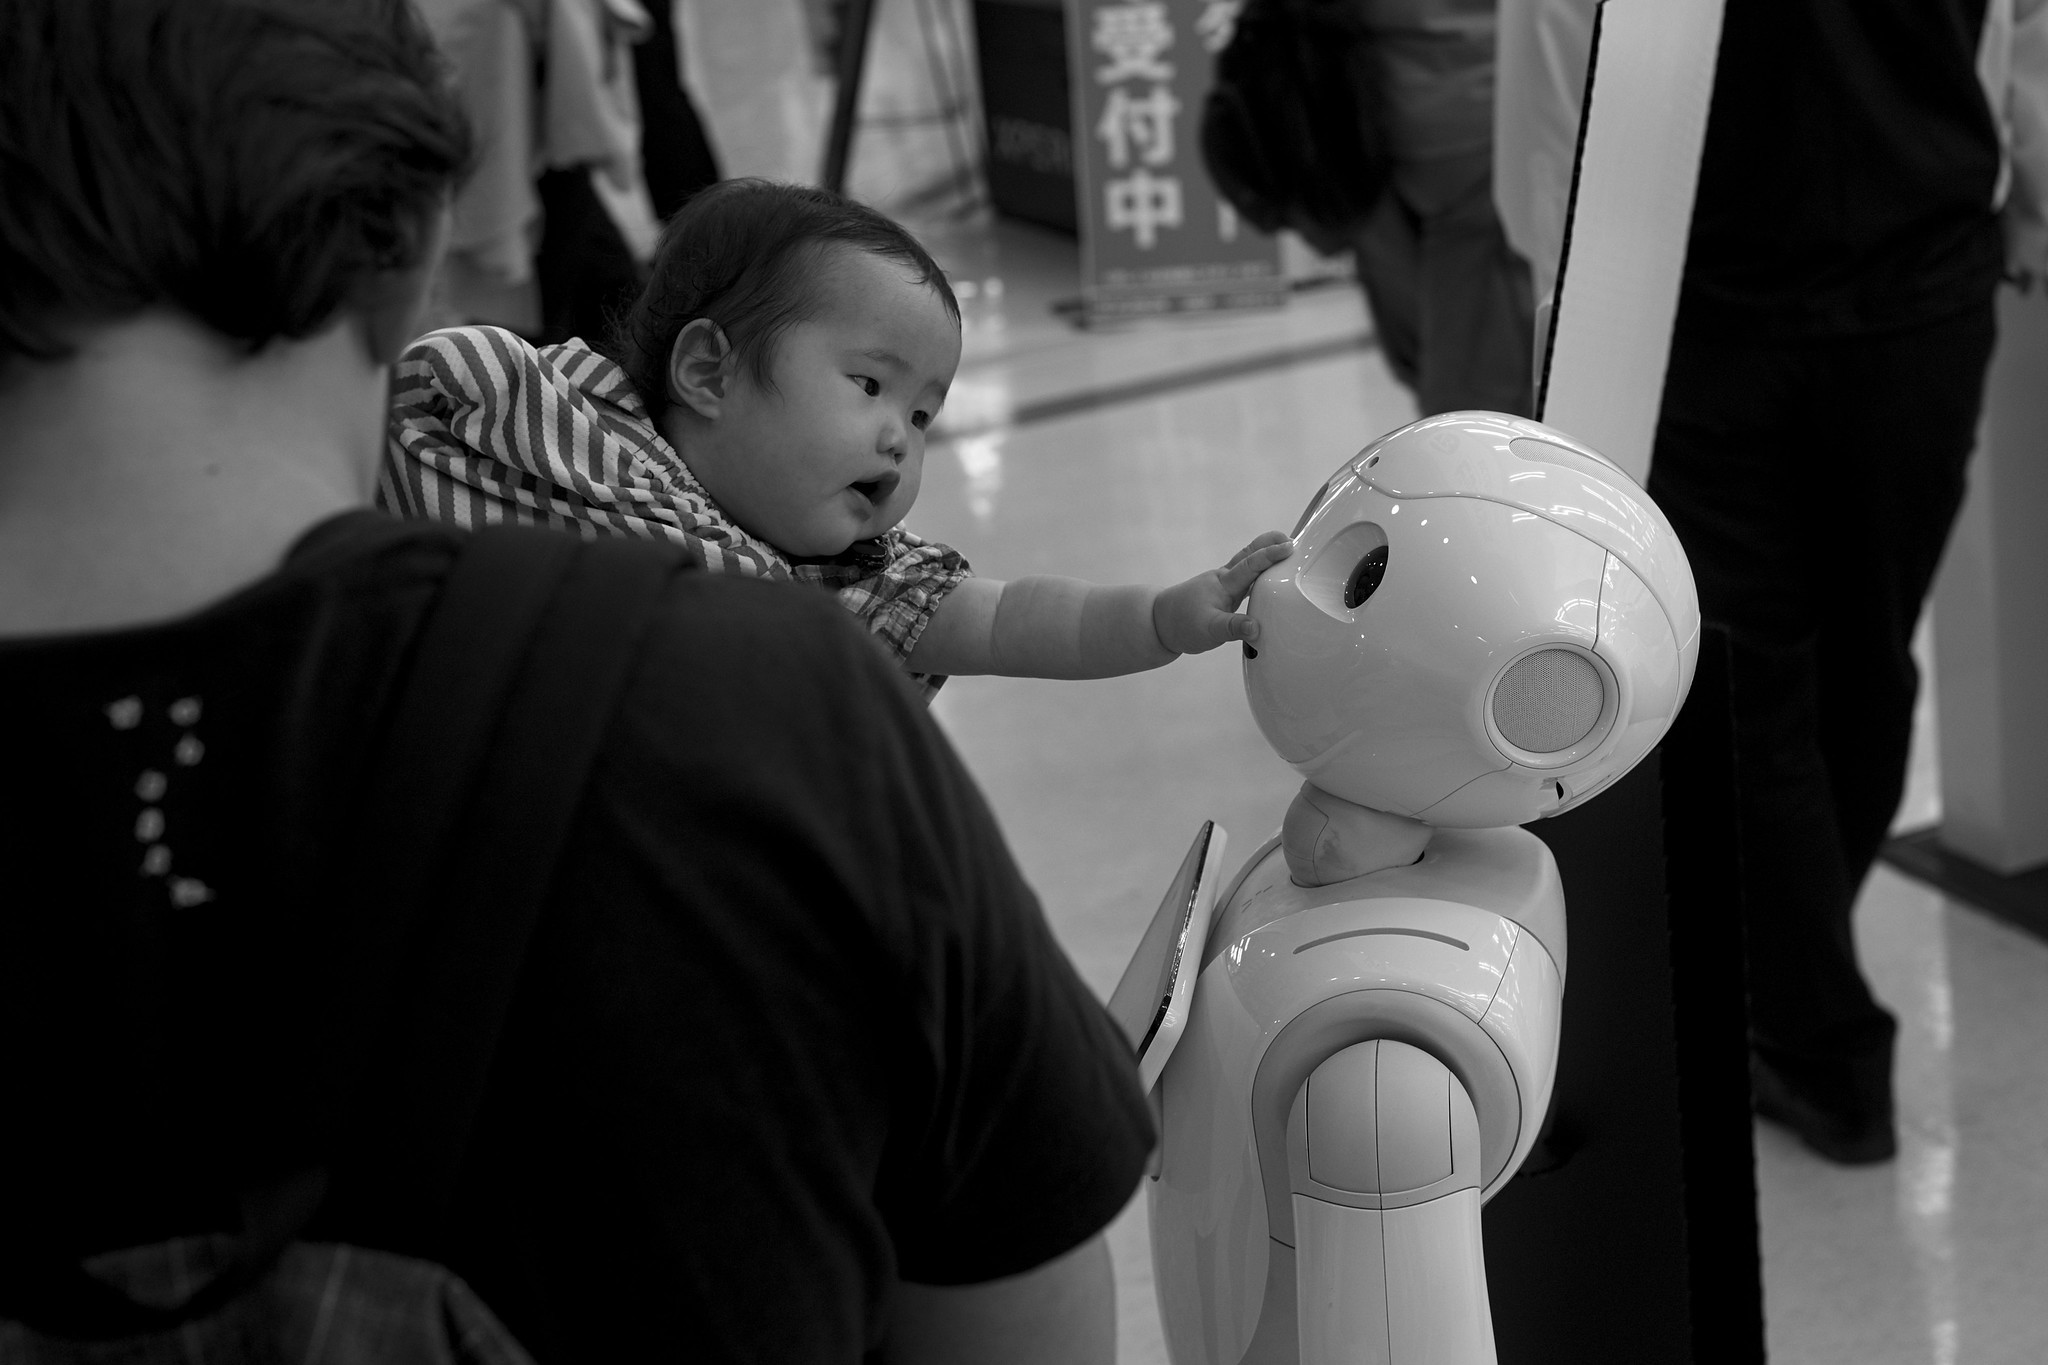 a baby interacting with Pepper the robot, taken from https://www.flickr.com/photos/jeena/37017614286/